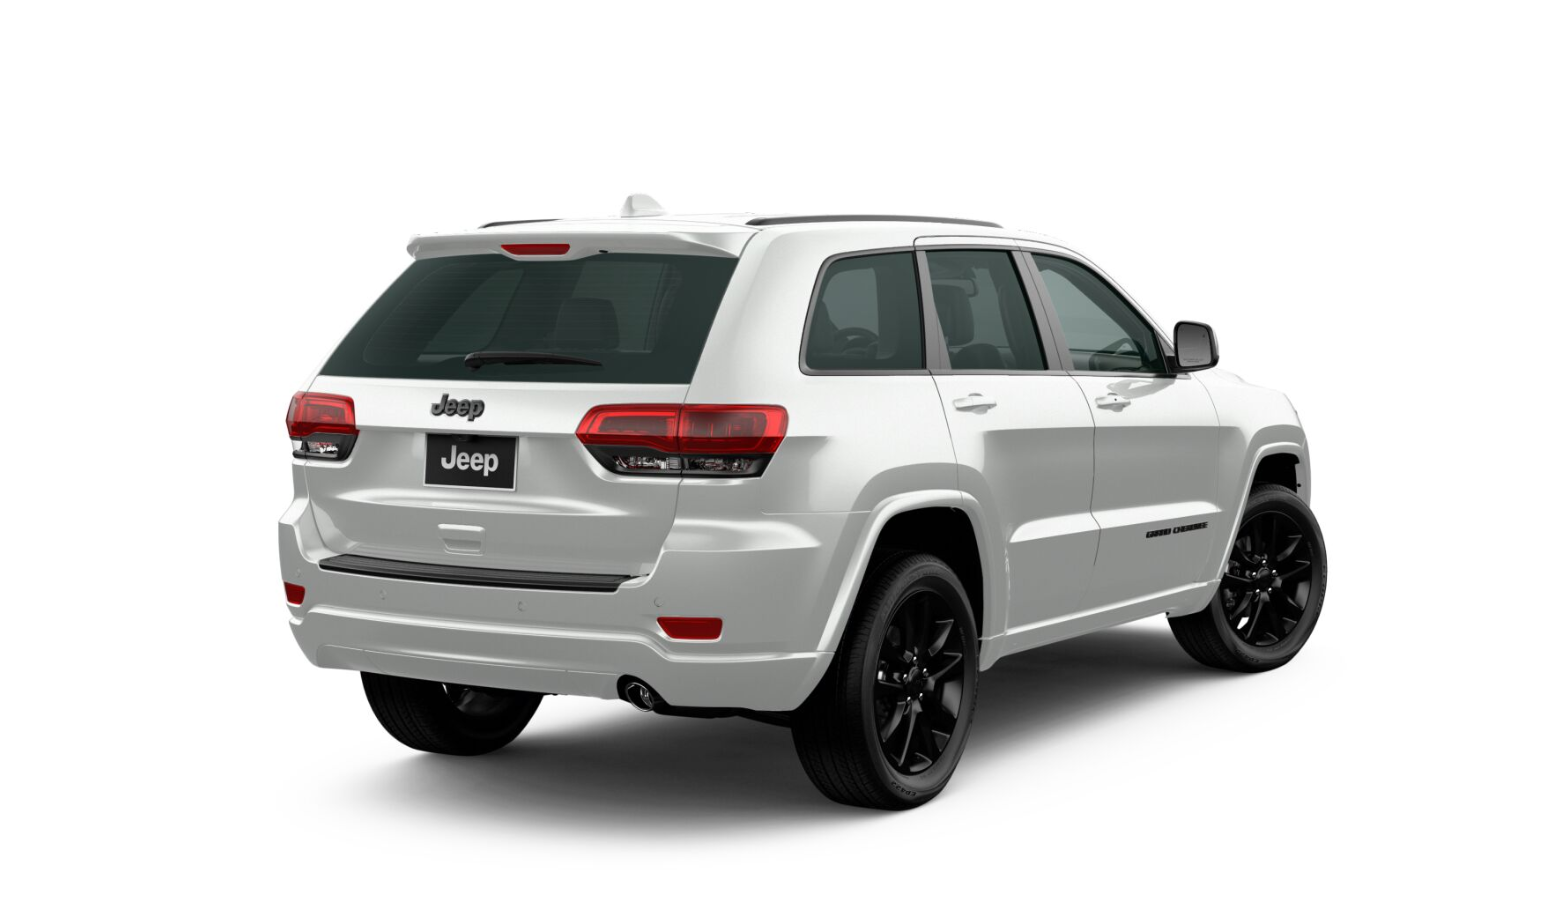 2020 Jeep Grand Cherokee Altitude Rear View White Exterior